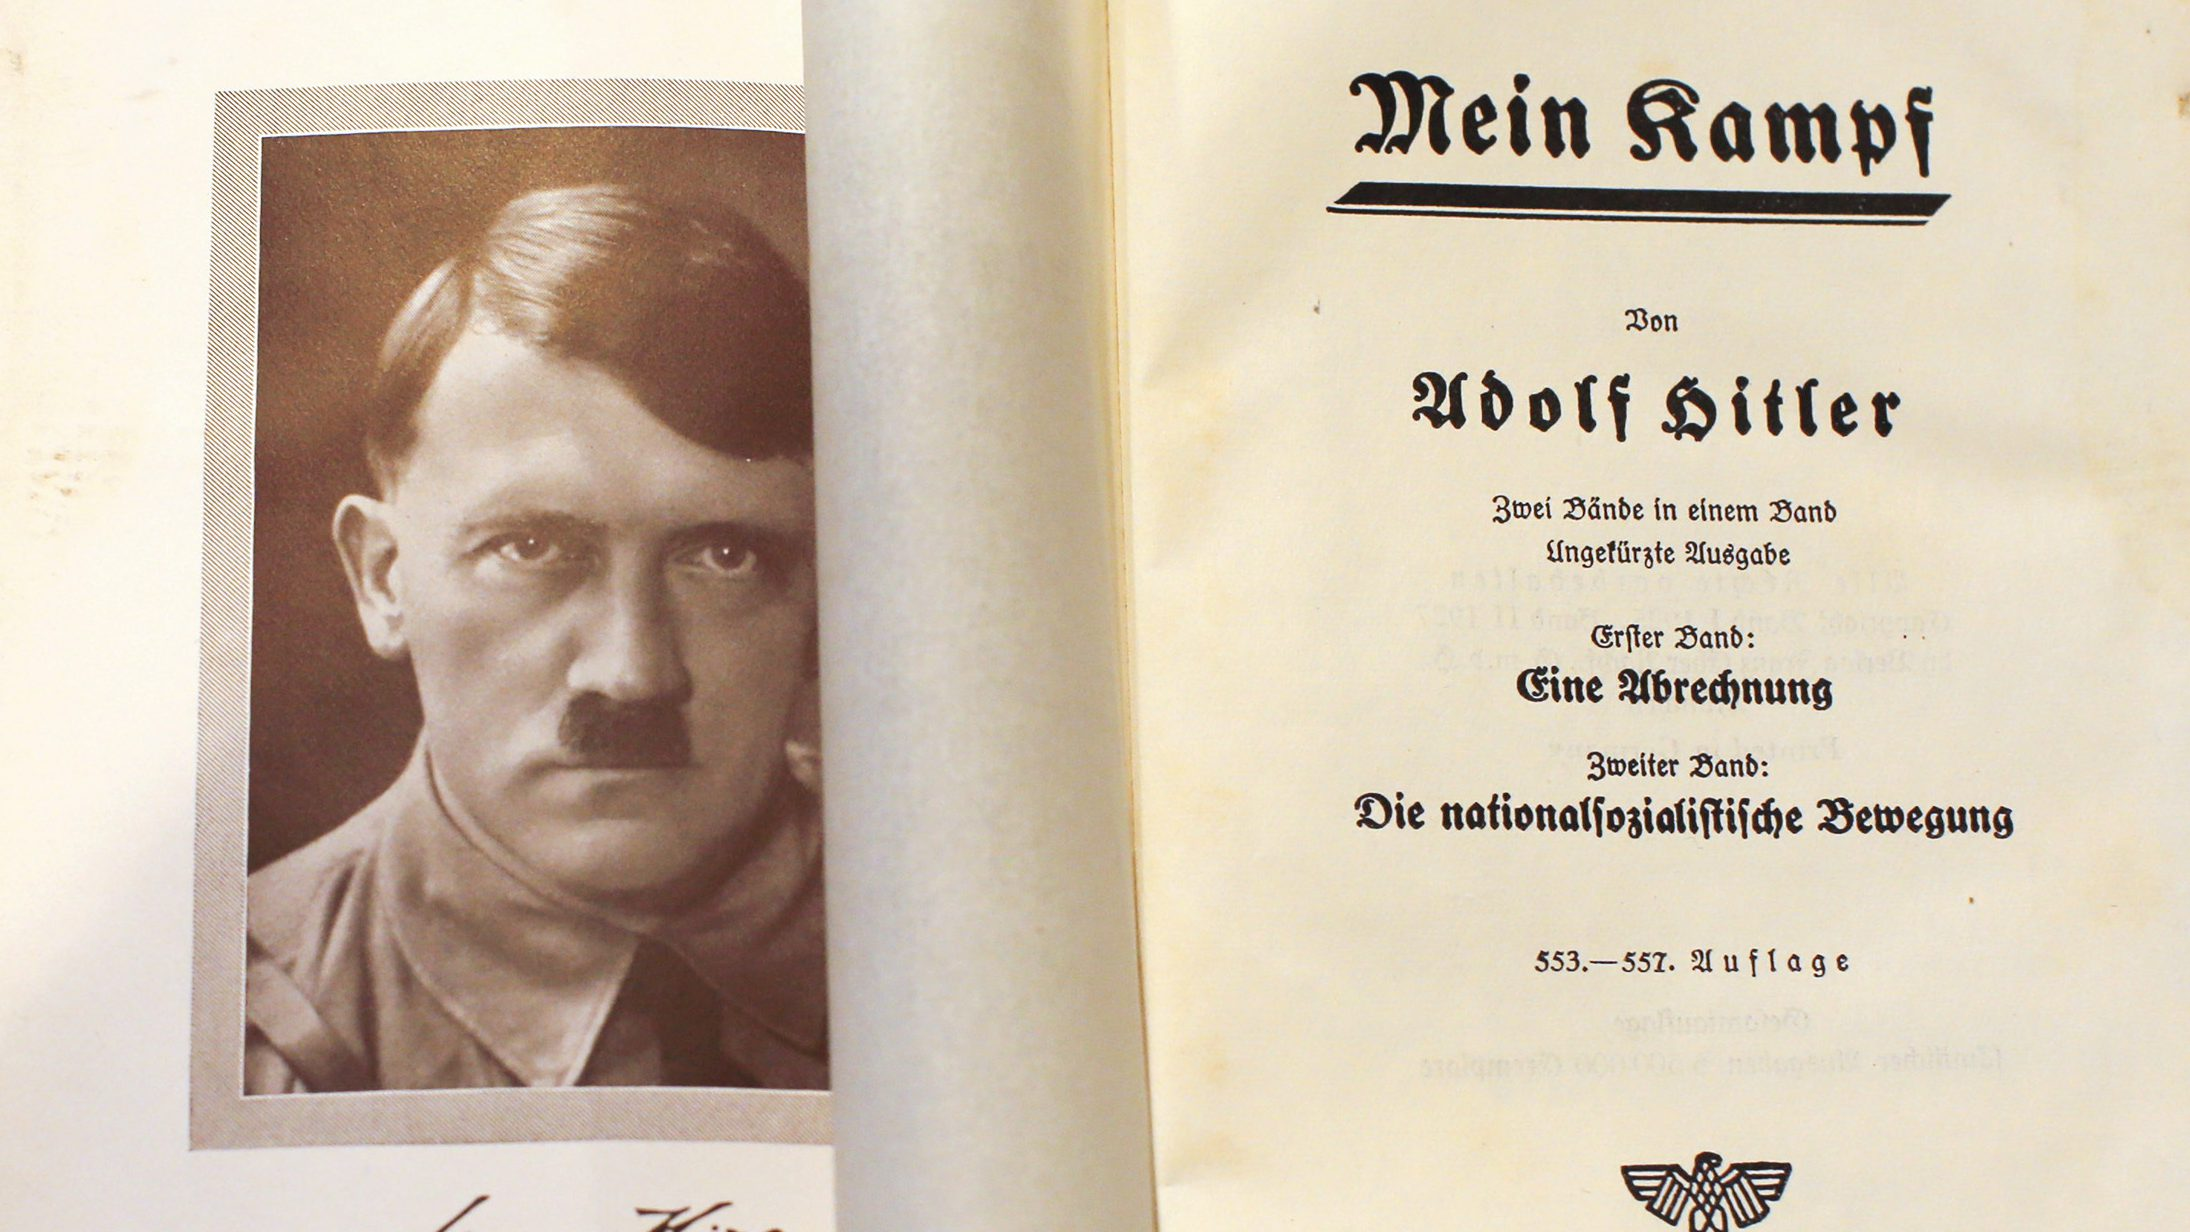 """A copy of Adolf Hitler's book """"Mein Kampf"""" (My Struggle) from 1940 is pictured in Berlin, Germany, in this picture taken December 16, 2015. For the first time since Hitler's death, Germany is publishing the Nazi leader's political treatise """"Mein Kampf,"""" unleashing a highly charged row over whether the text is an inflammatory racist diatribe or a useful educational tool. REUTERS/Fabrizio Bensch - RTX1ZVMJ"""